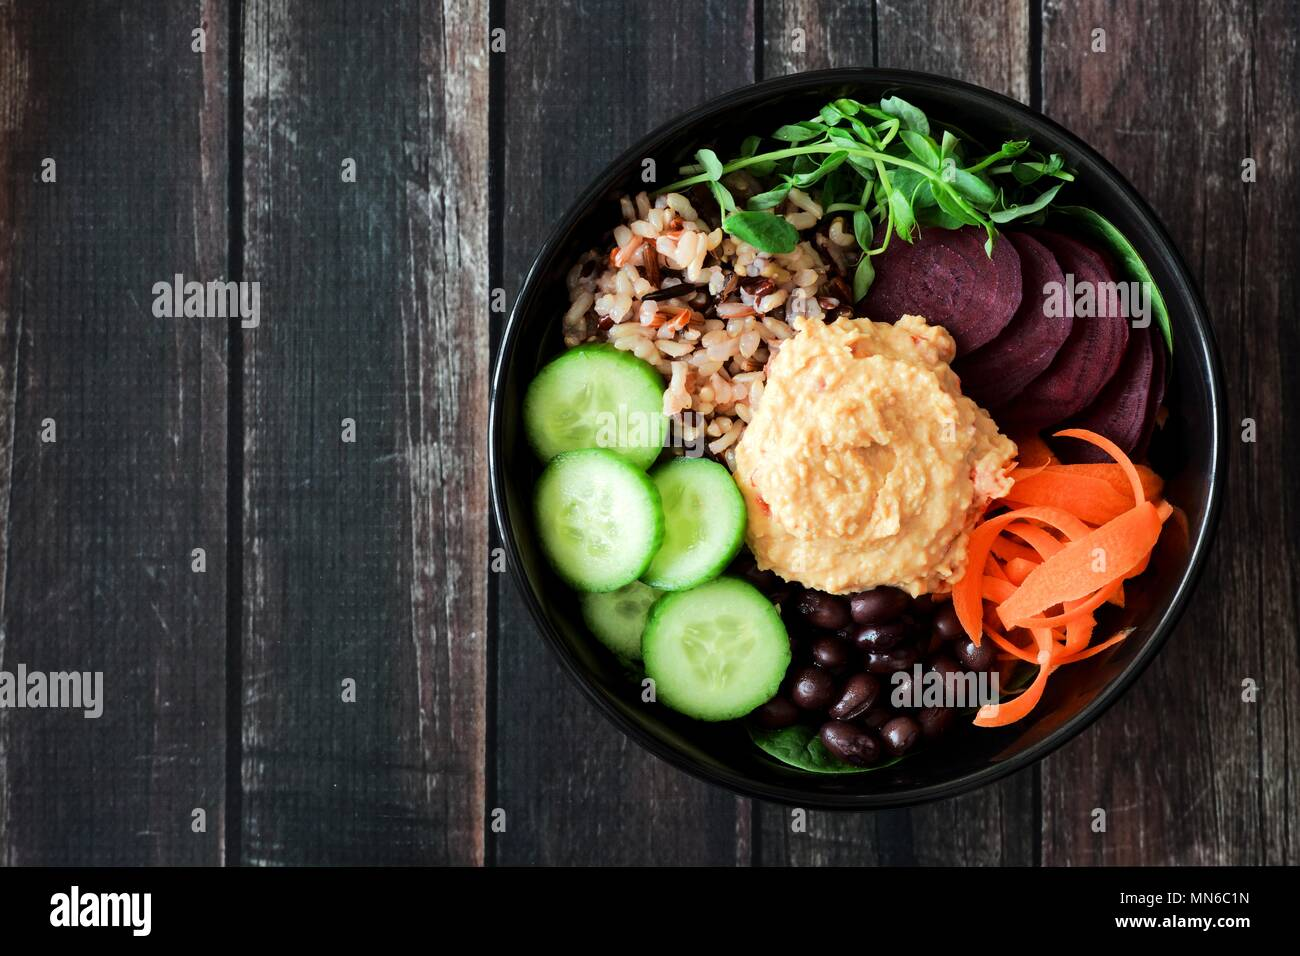 Healthy vegetarian nourishment bowl with hummus, beans, wild rice, beets, carrots, cucumbers and pea shoots. Above view on dark wood. - Stock Image